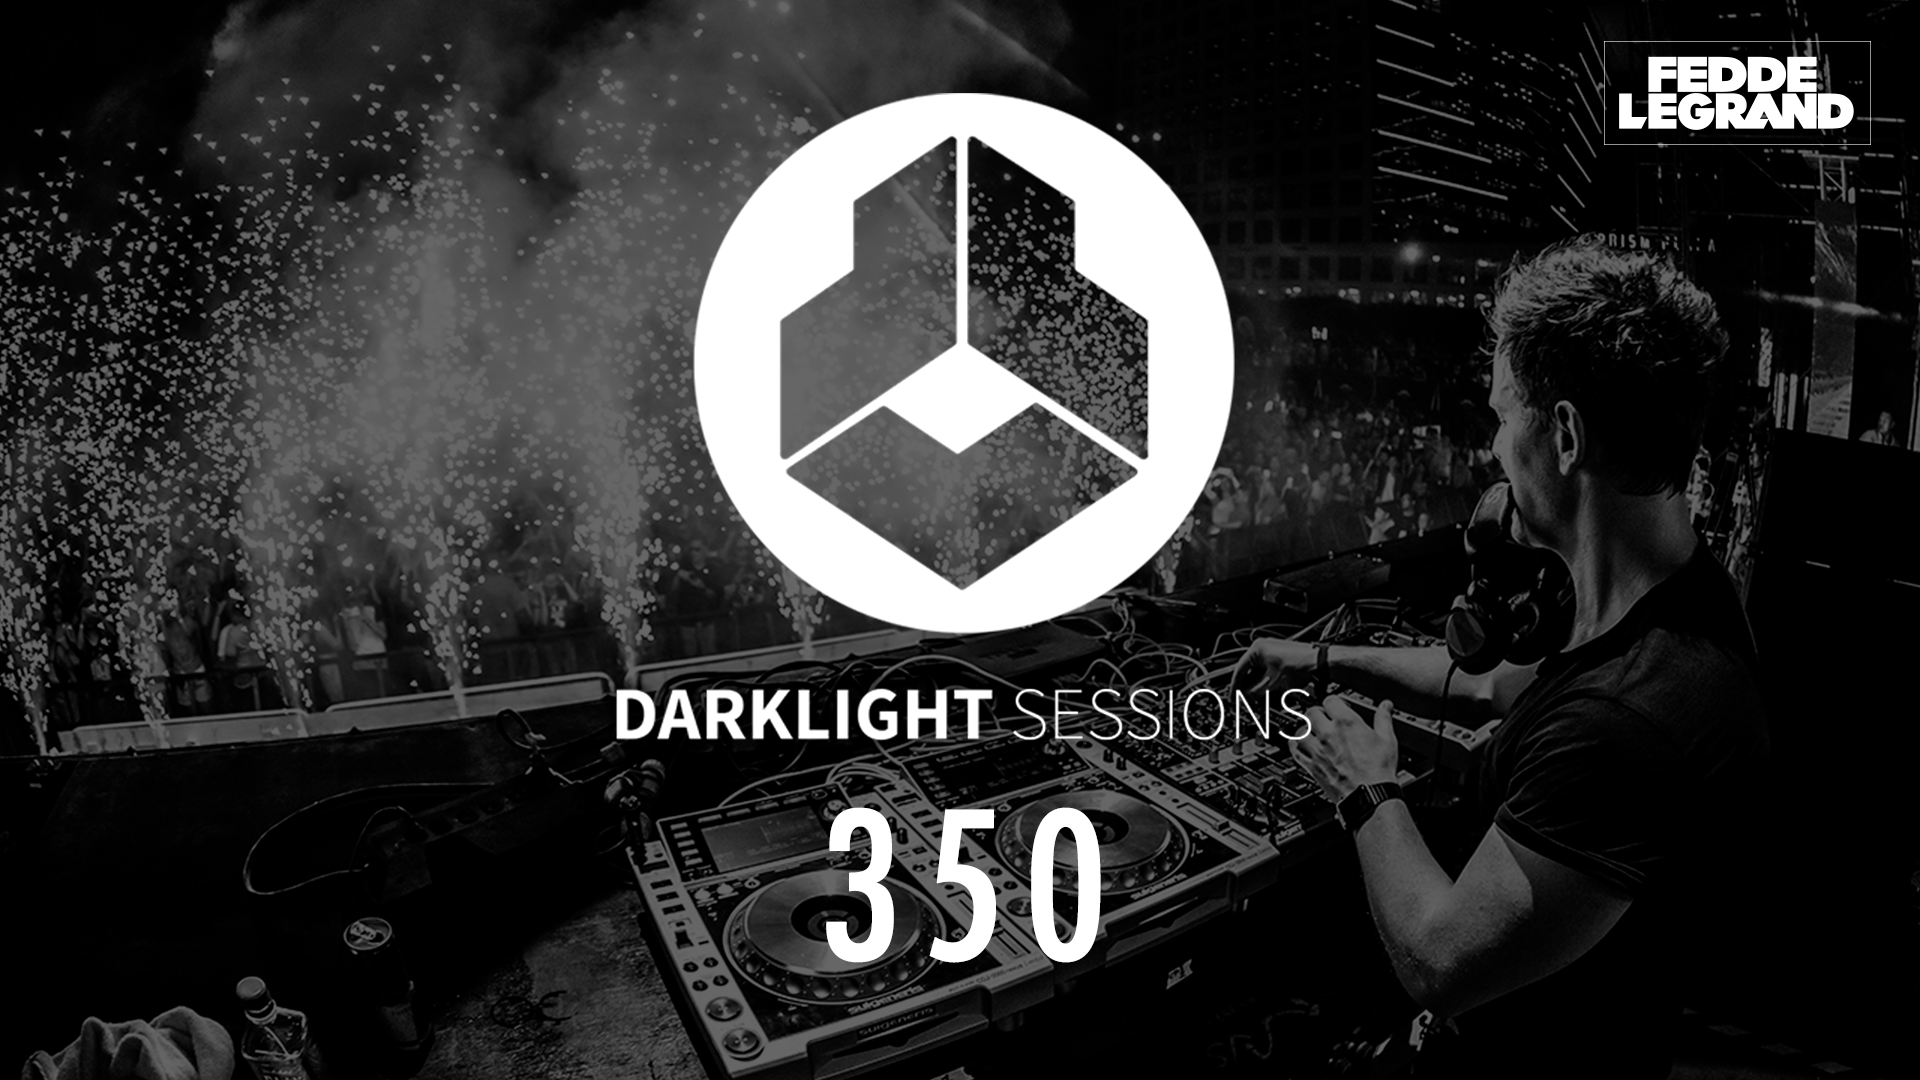 Darklight Sessions 350